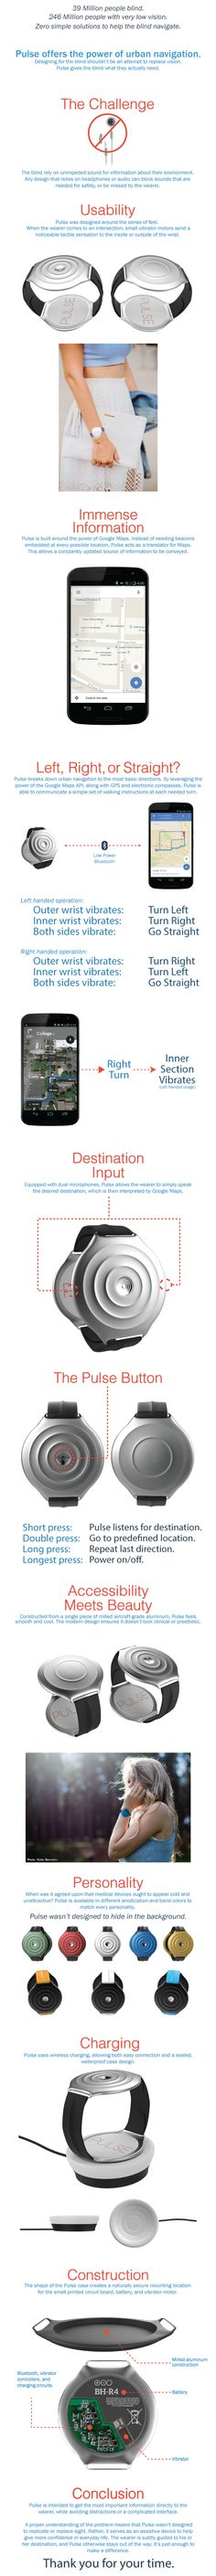 Pulse: Navigation for the Visually Impaired. on Behance